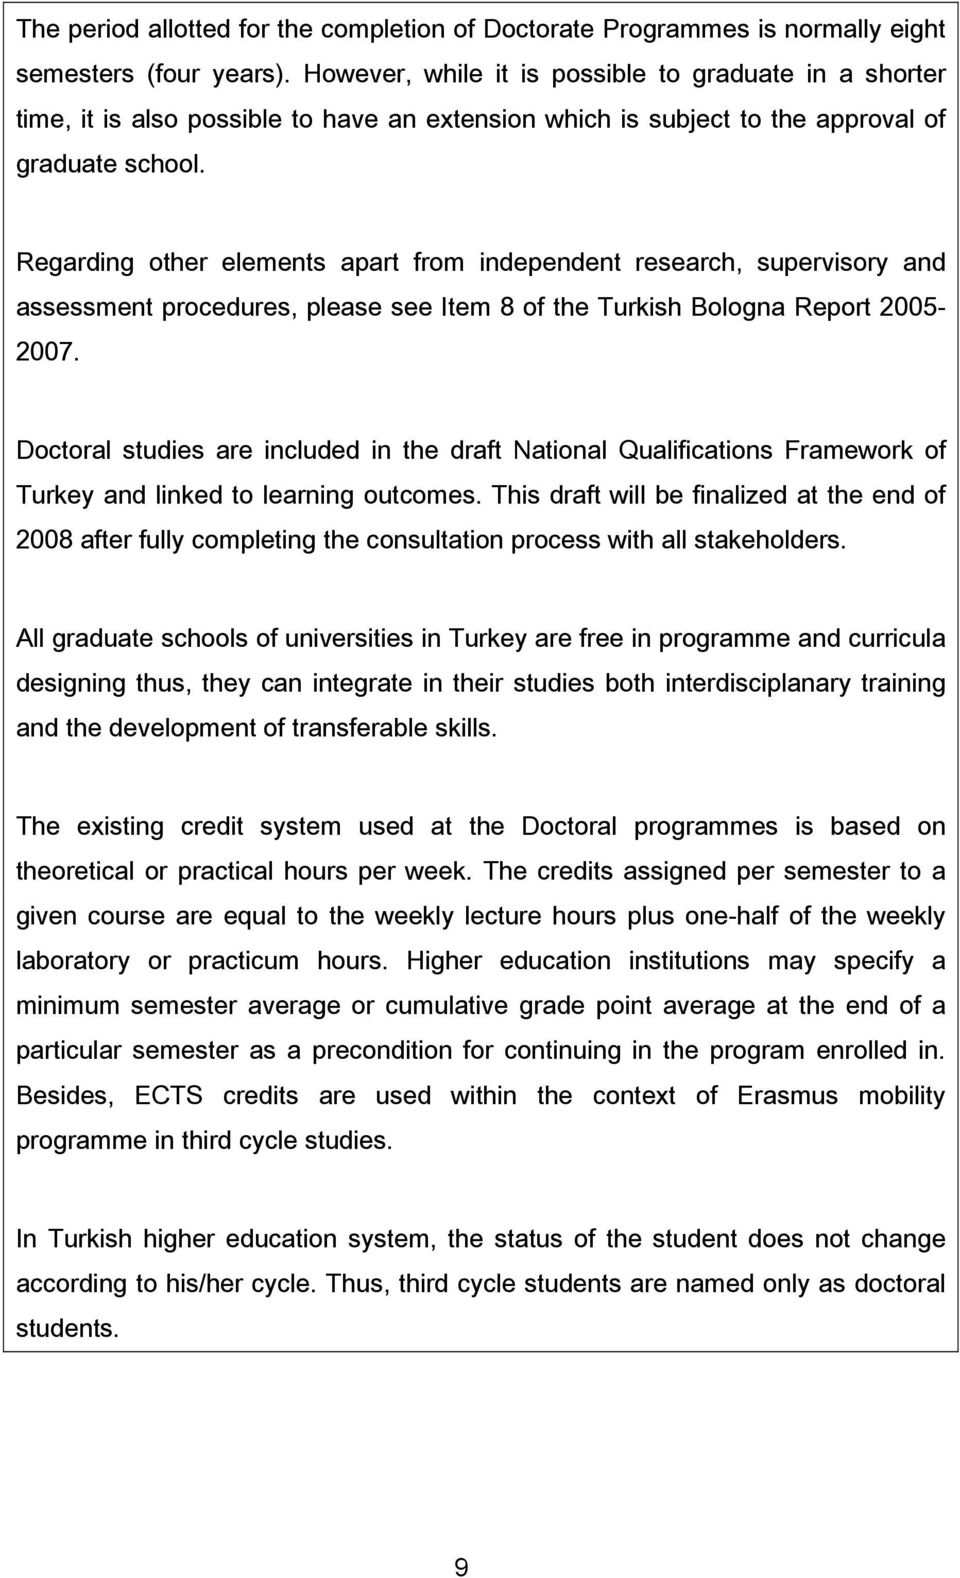 Regarding other elements apart from independent research, supervisory and assessment procedures, please see Item 8 of the Turkish Bologna Report 2005-2007.